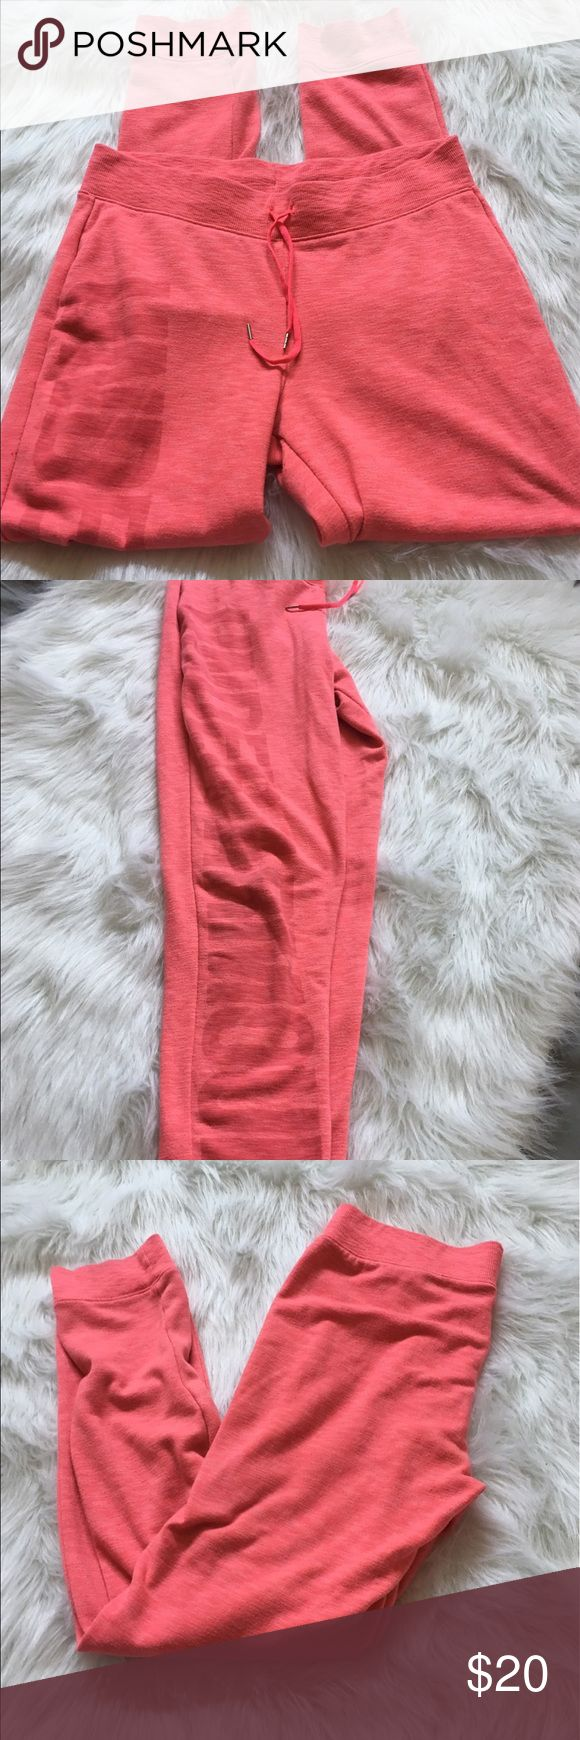 Under armor sweats! Super cute pink under armour sweats! Great used condition! There are little marks at the bottom all the way down. But hard to tell. Size S (#178) Under Armour Pants